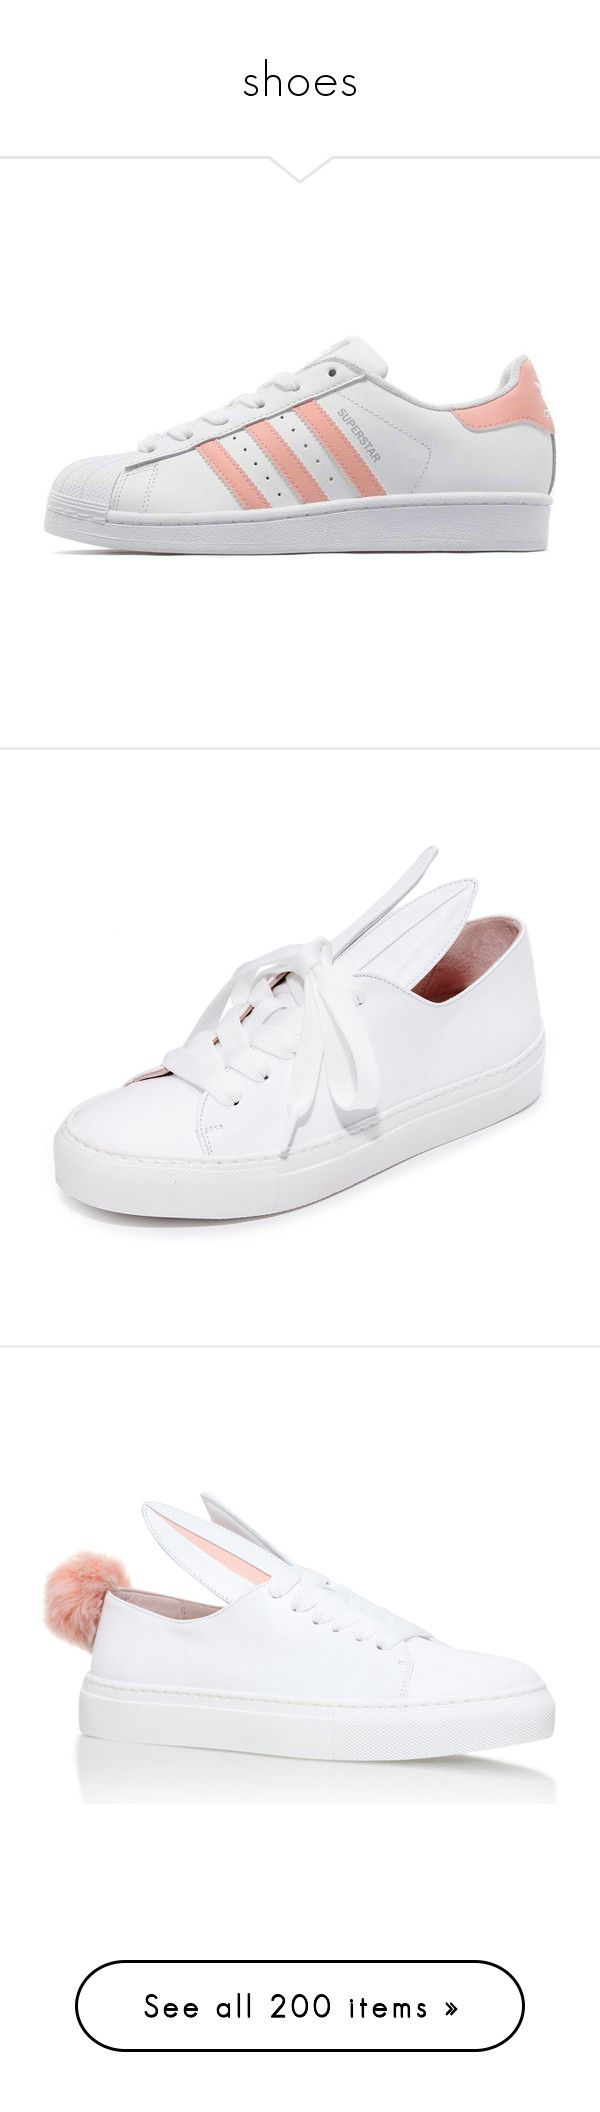 """""""shoes"""" by monbbeatrice ❤ liked on Polyvore featuring shoes, sneakers, adidas, tenis, rubber sneakers, rubber shoes, chunky sneakers, stripe shoes, pink shoes and all white"""